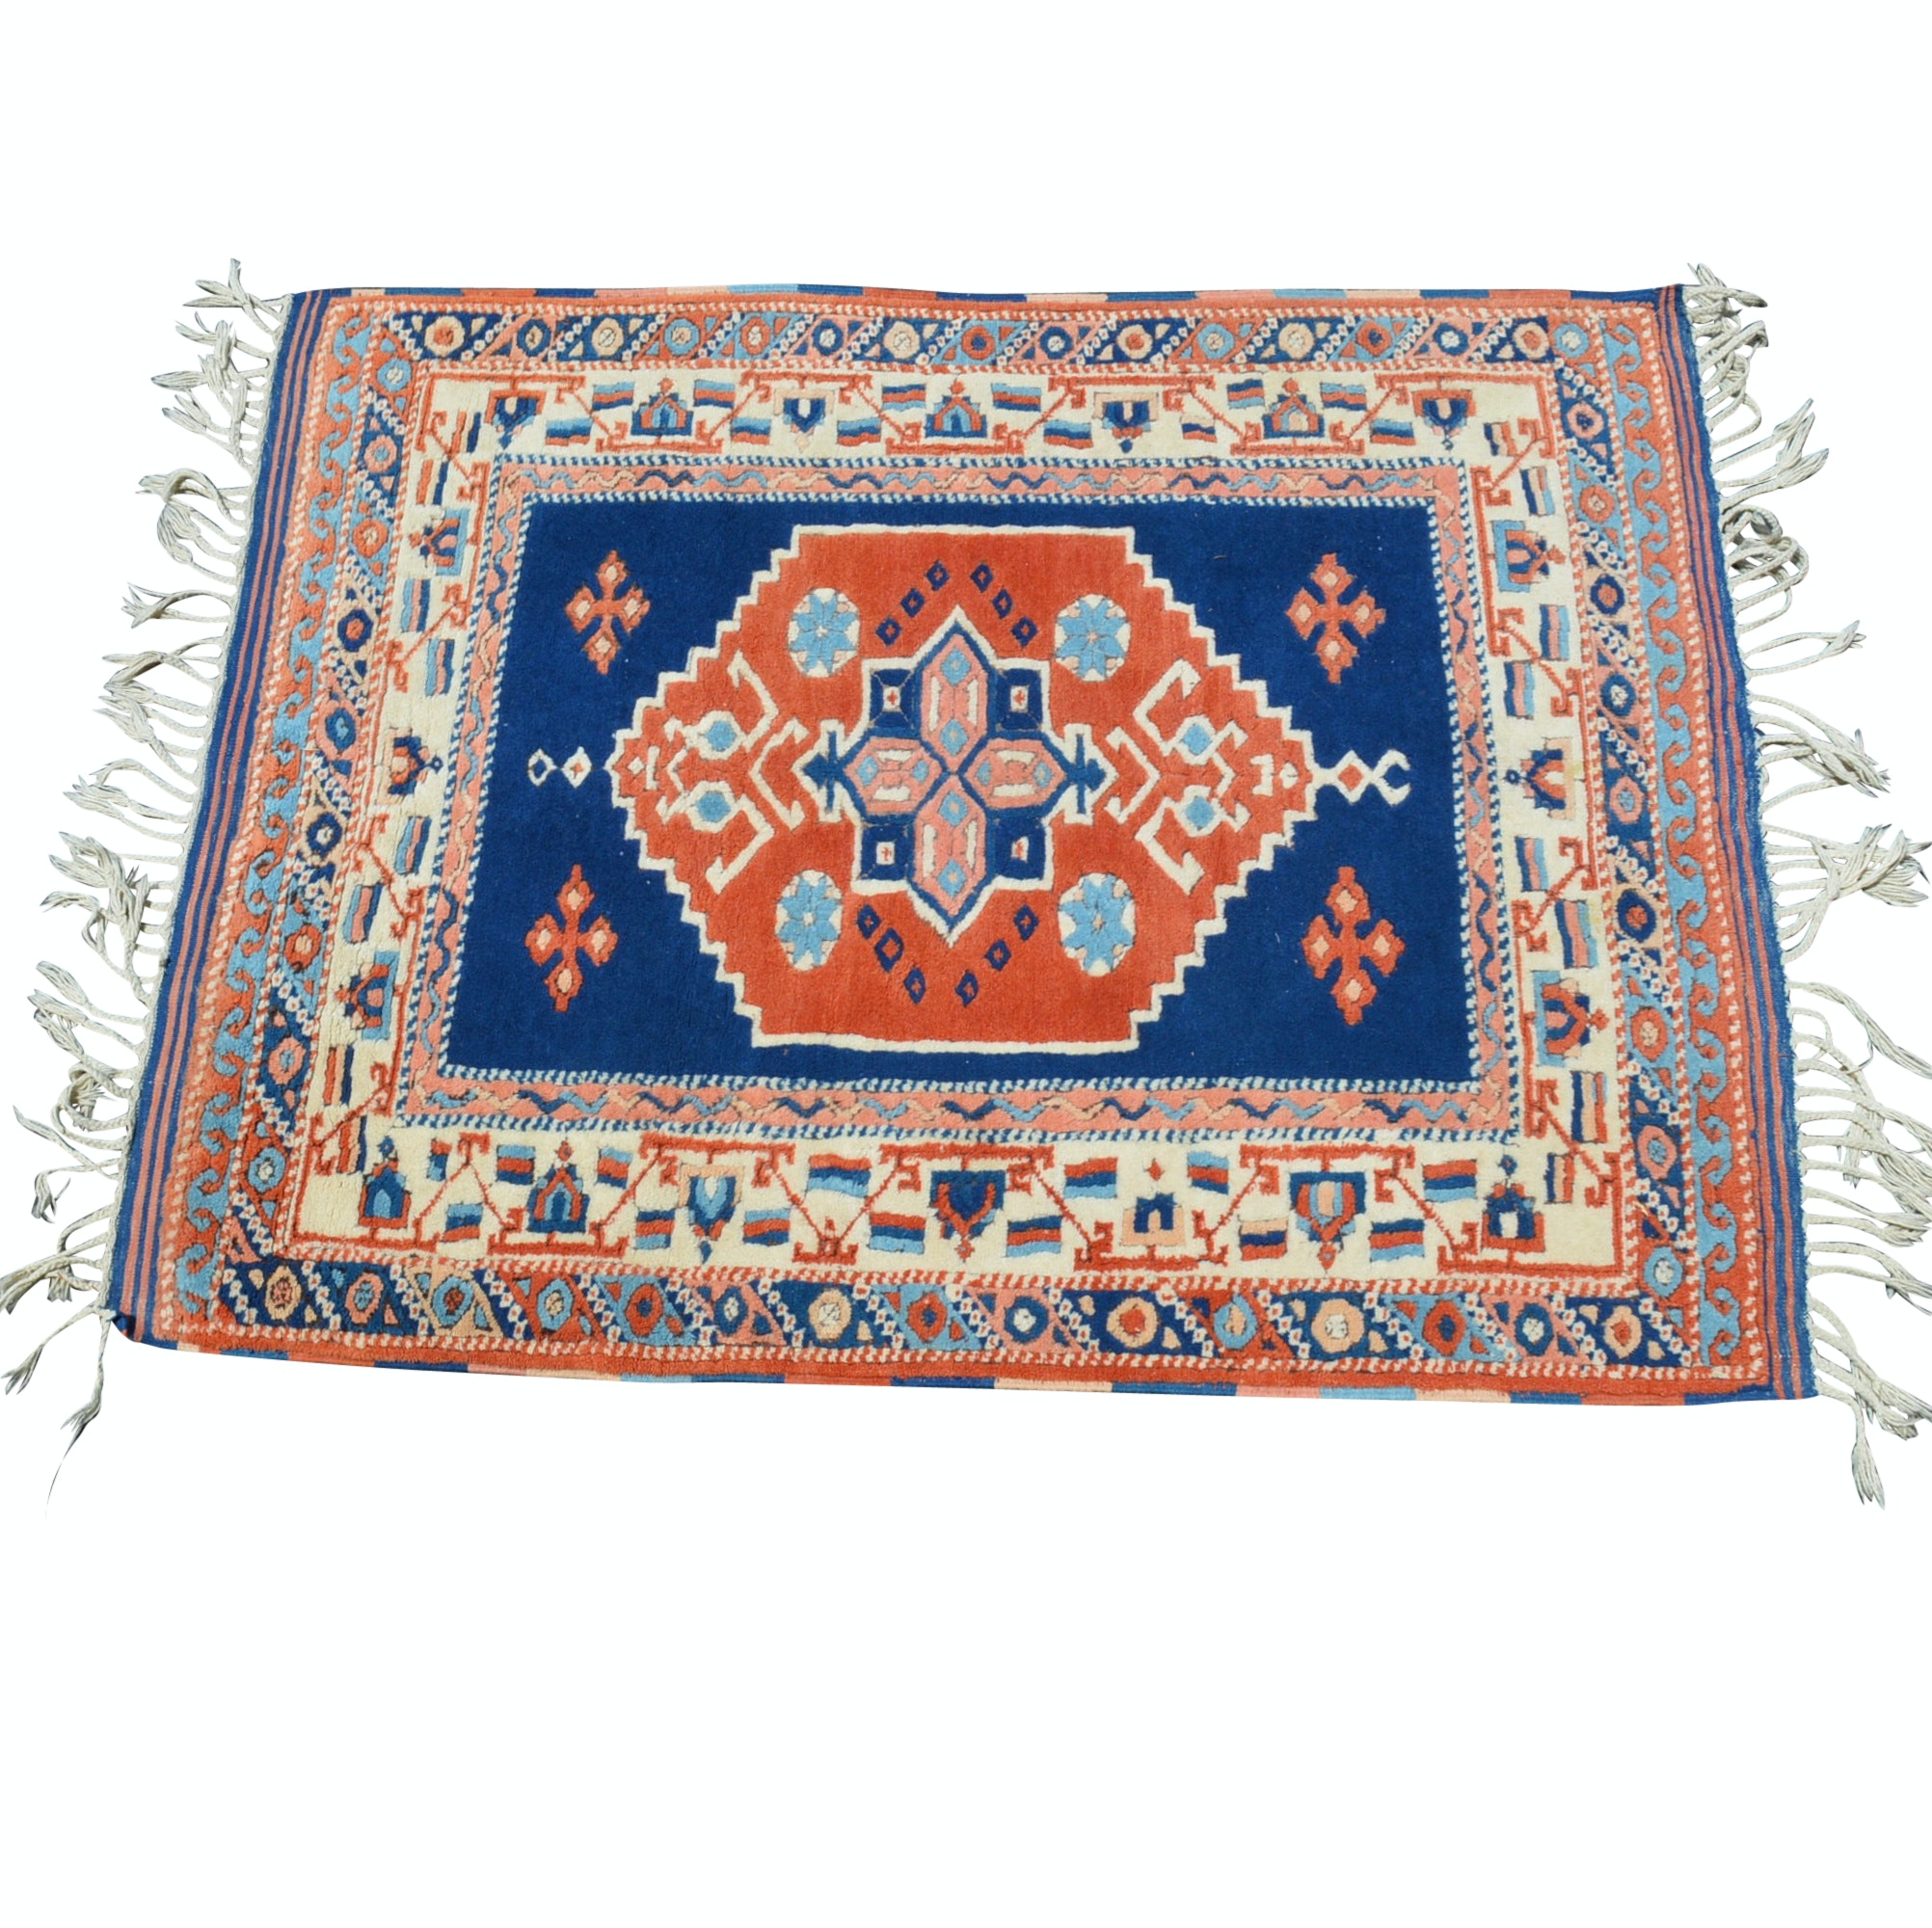 Hand-Knotted Kazak-Style Wool Area Rug